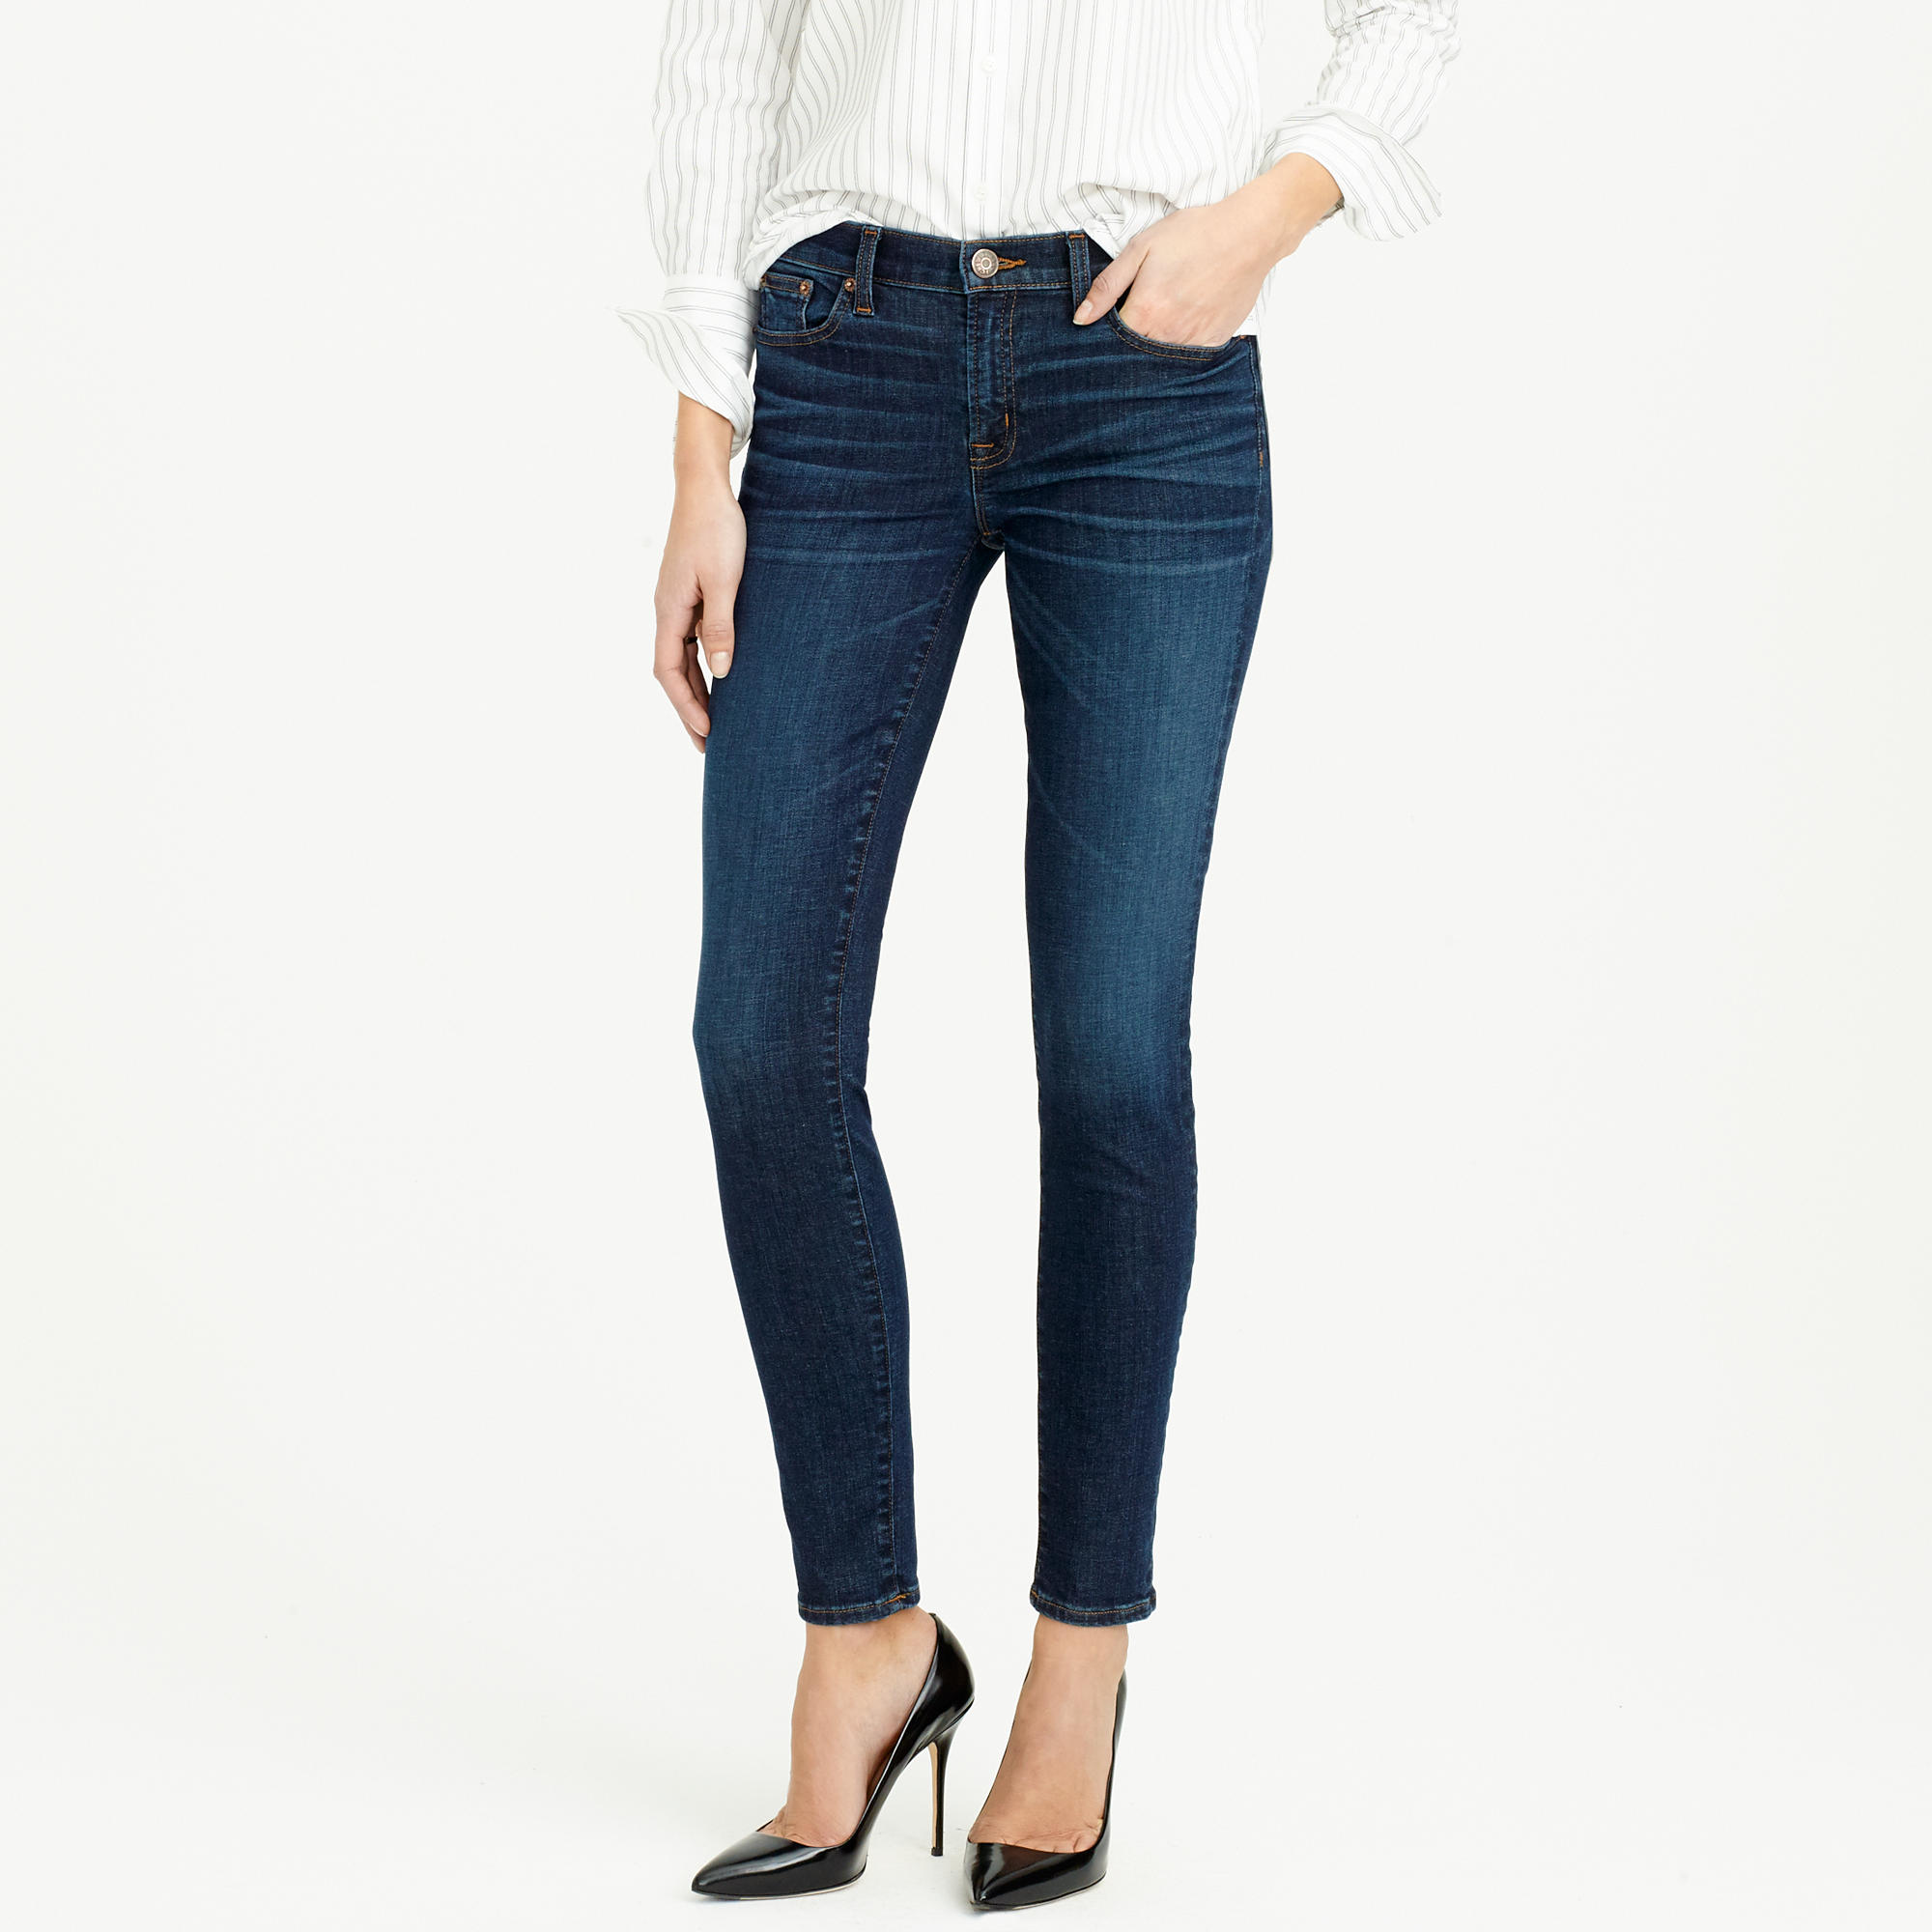 Jeans _2_